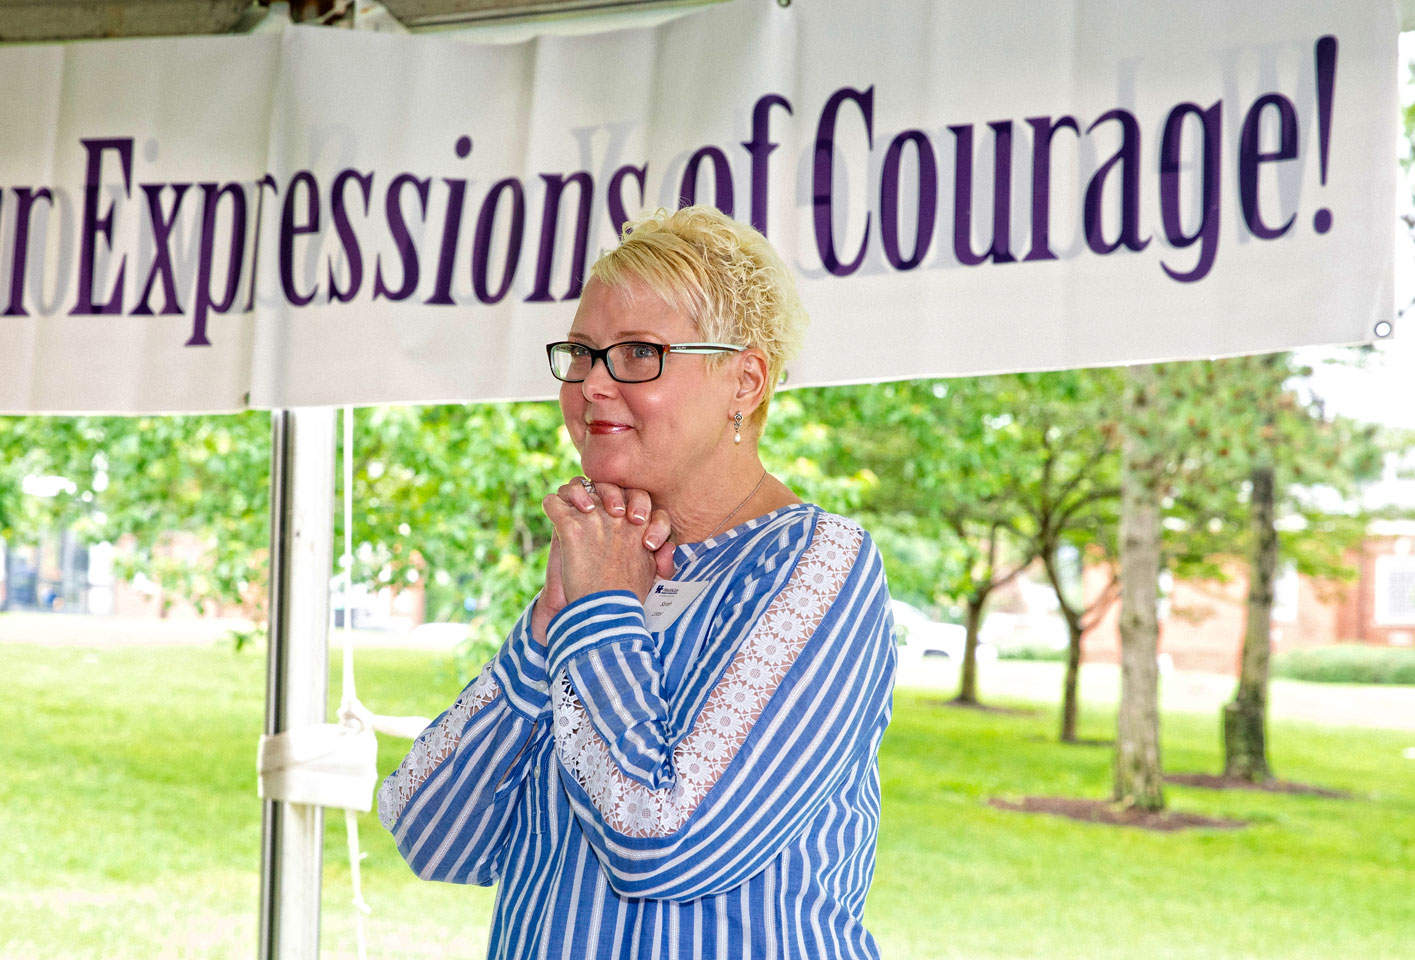 Sarah clasps her hands under her chin and smiles at the Expressions of Courage event.